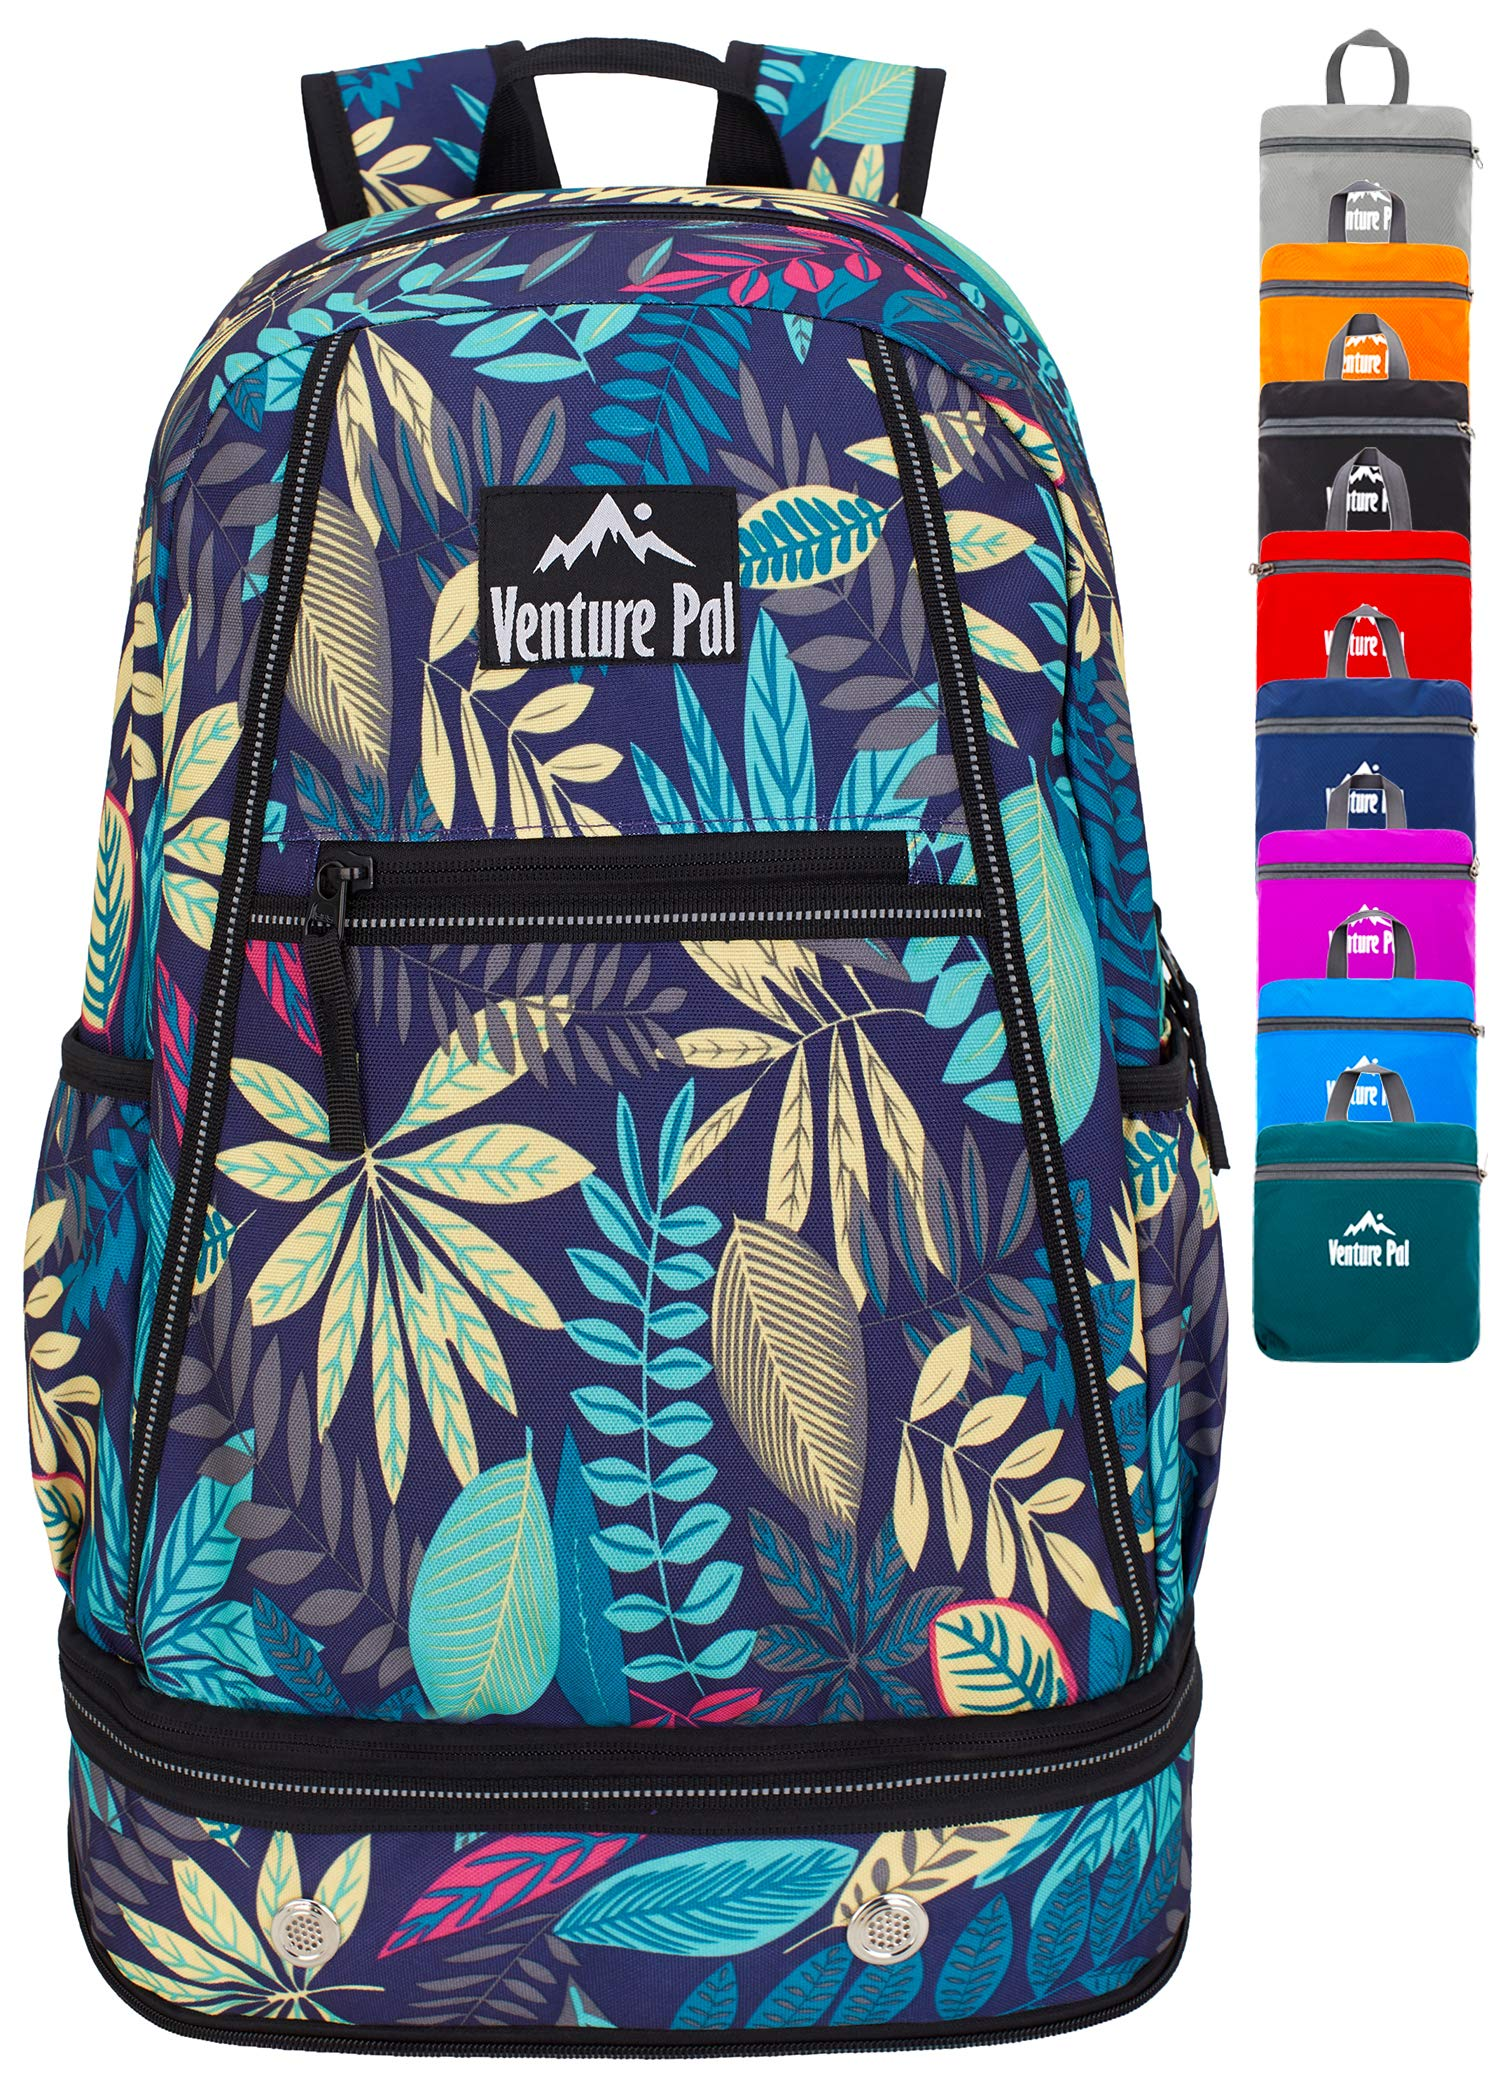 Venture Pal 35L Large Lightweight Packable Hiking Backpack with Wet Pocket & Shoes Compartment Travel Backpack & Day Backpack for Women Mens Girls Boys